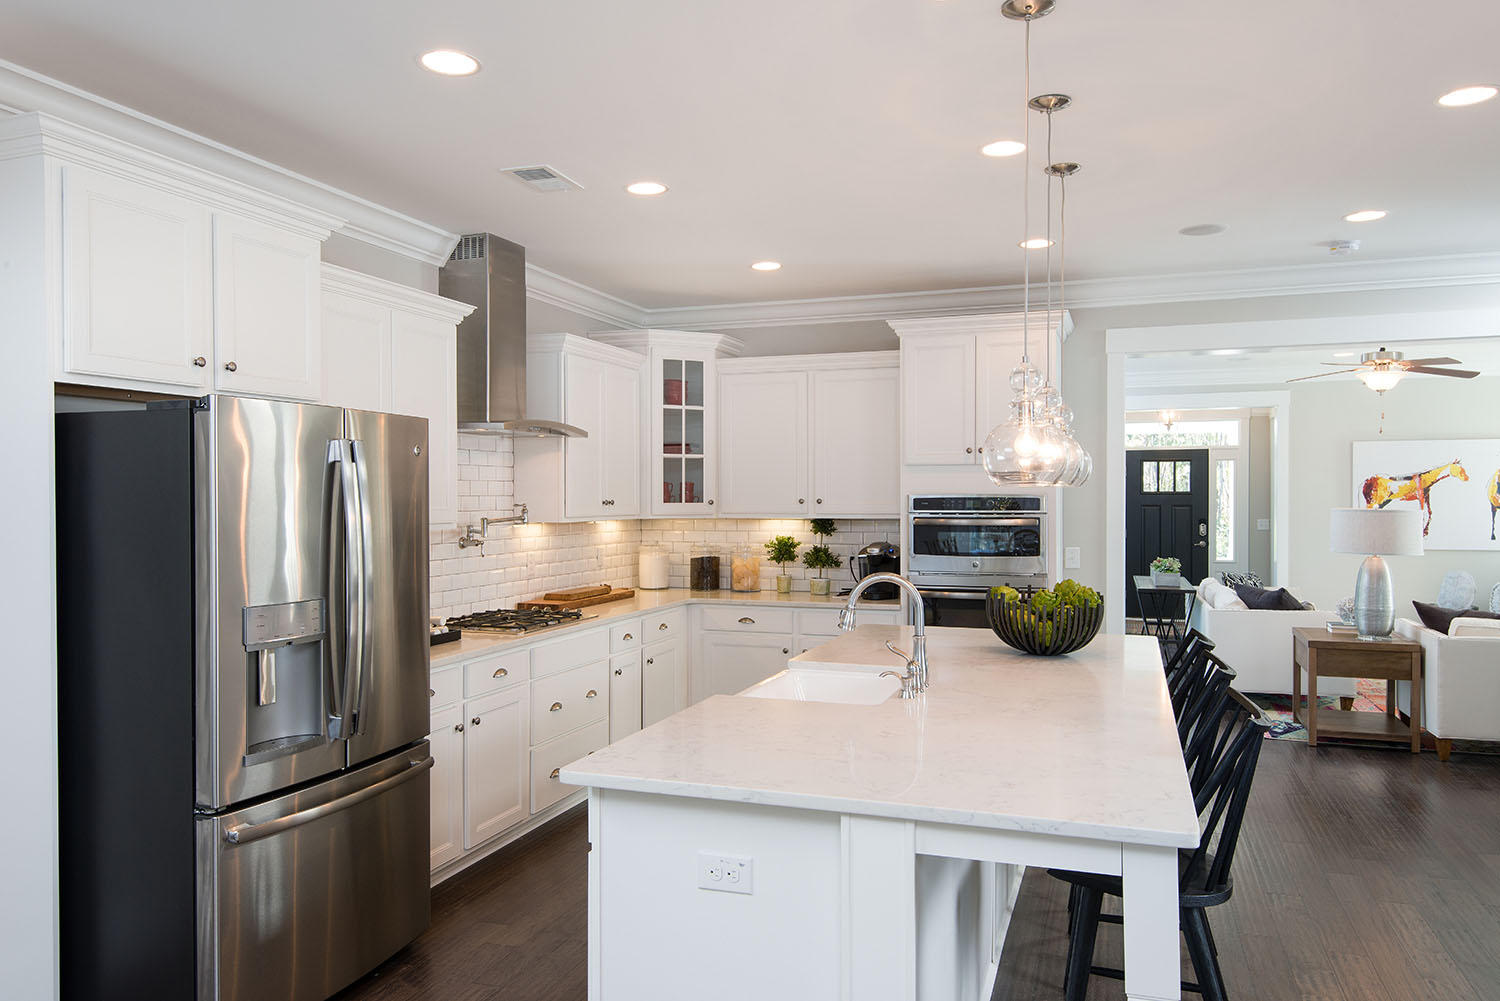 The Village at Stiles Point Homes For Sale - 869 Shutes Folly, Charleston, SC - 16